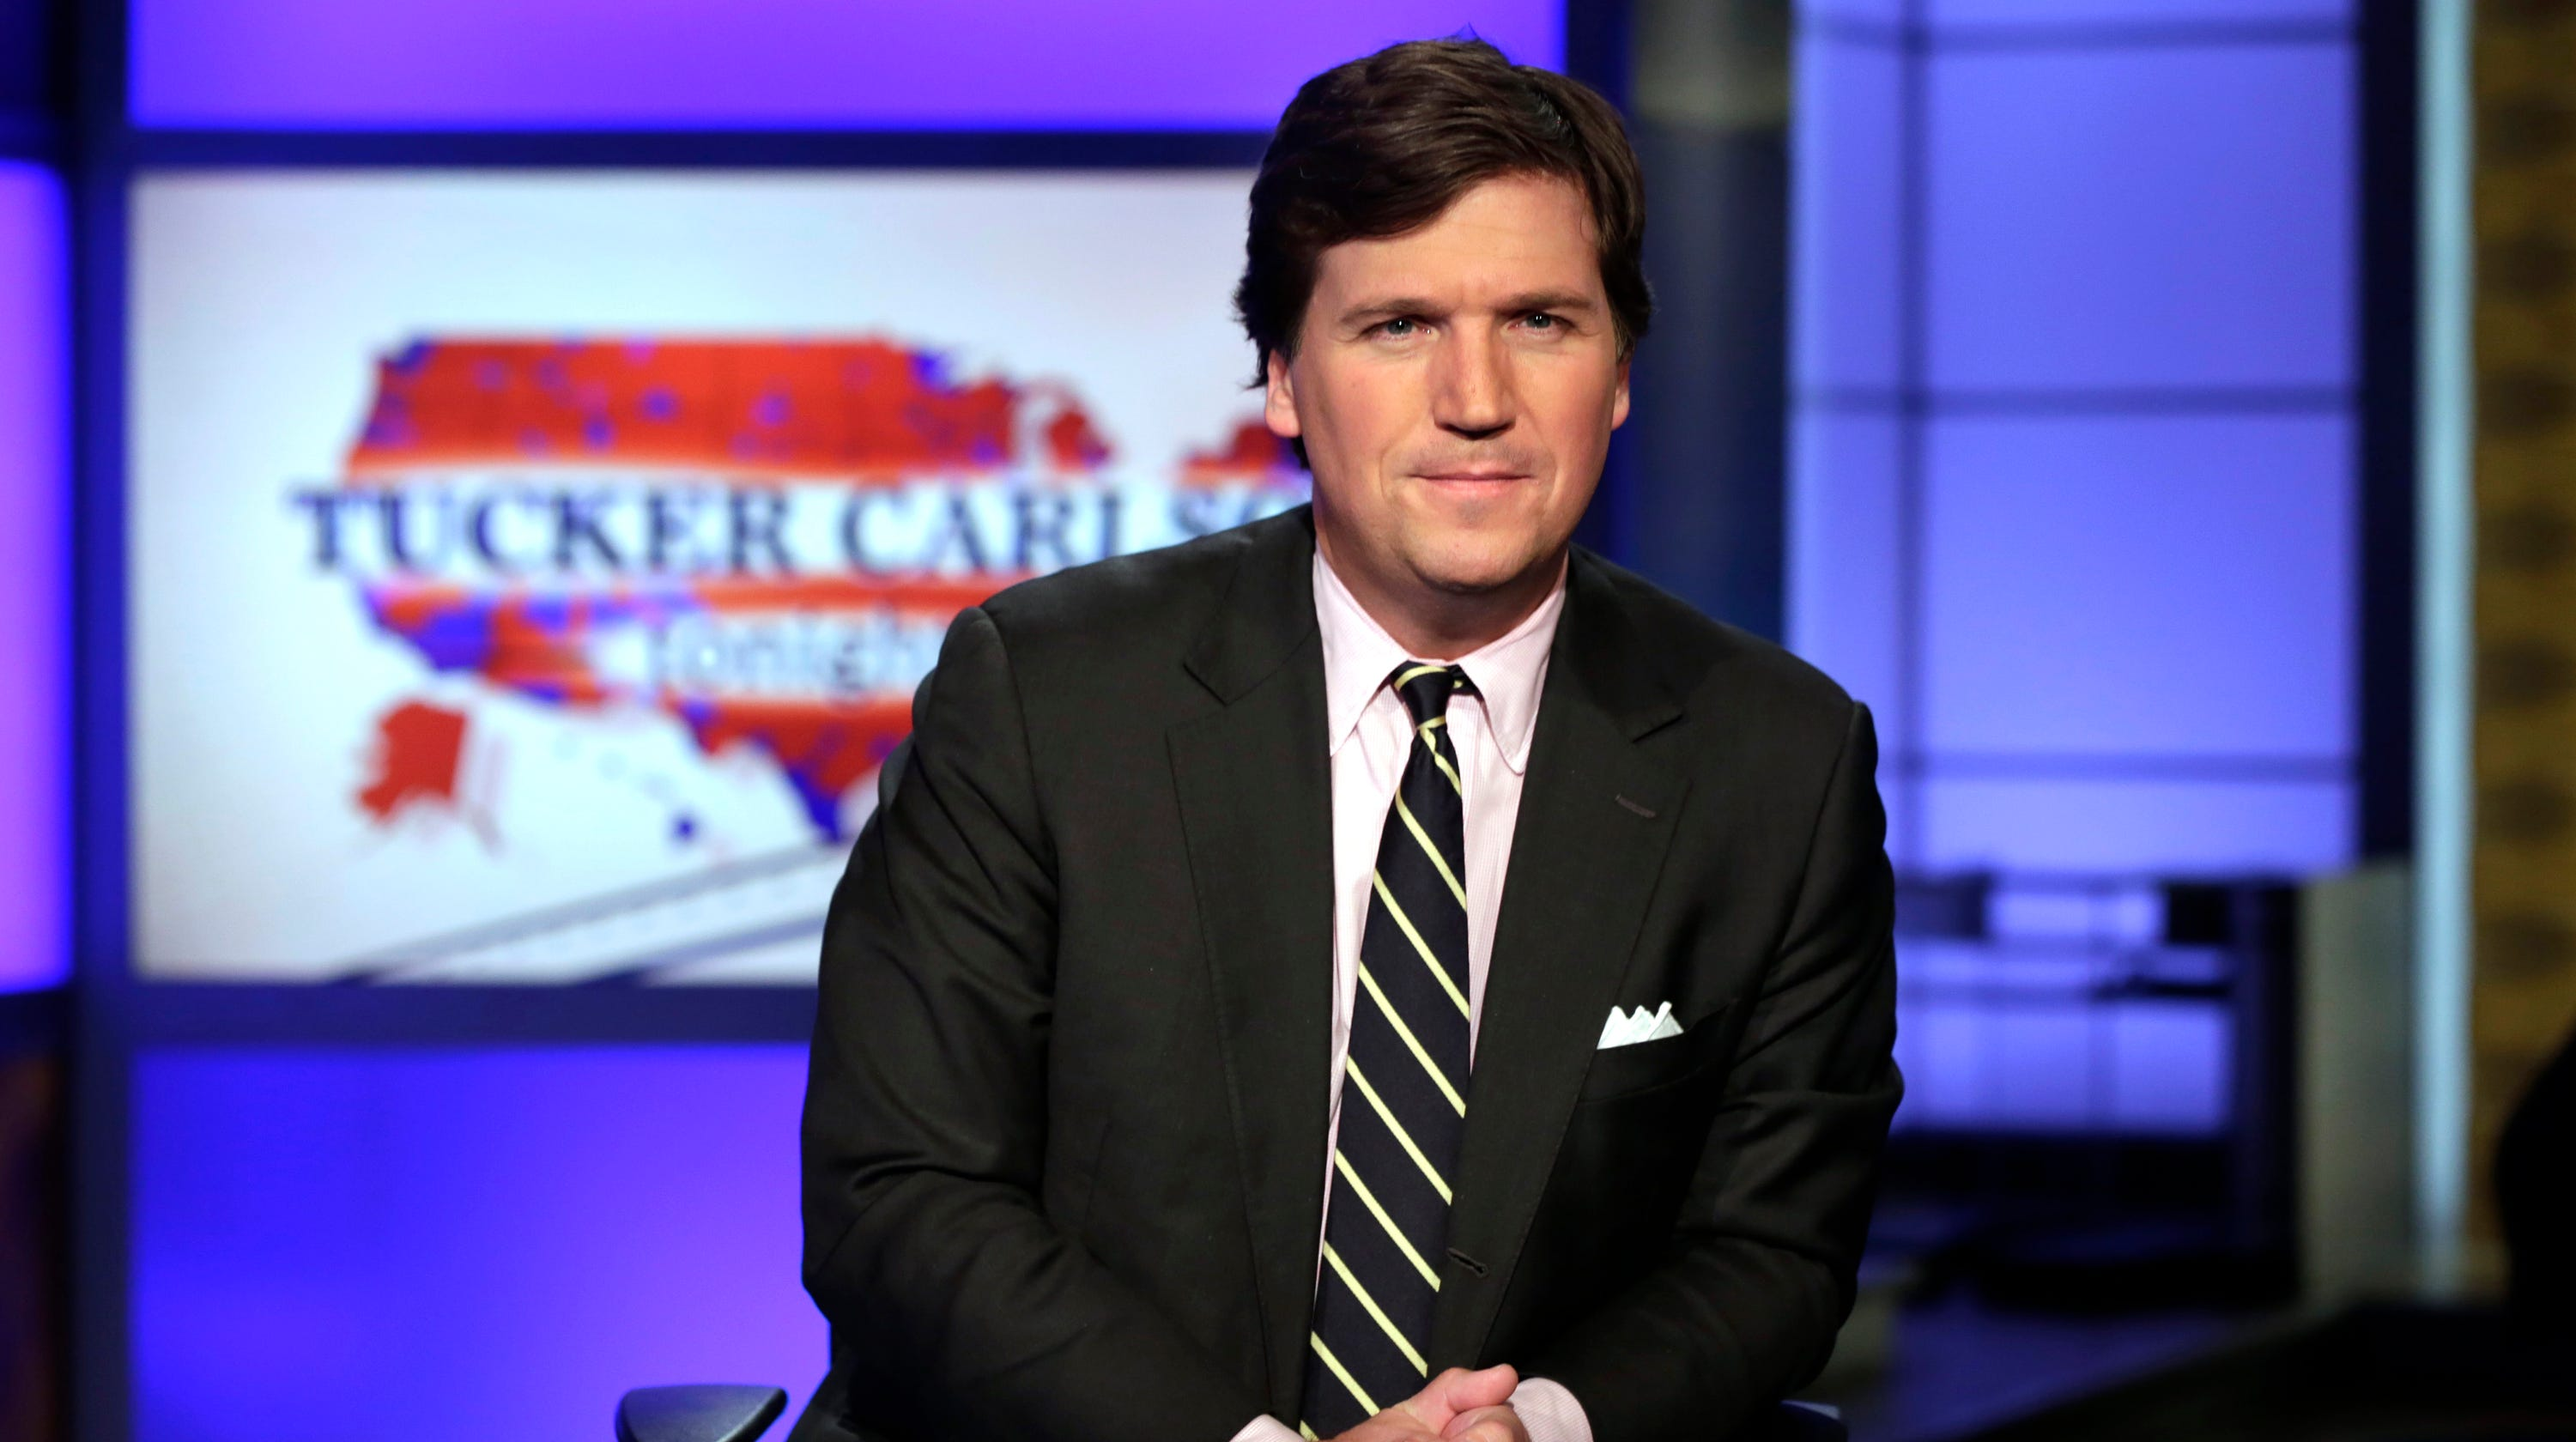 Tucker Carlson gives 'update' after segment on Sidney Powell voter fraud draws backlash – USA TODAY